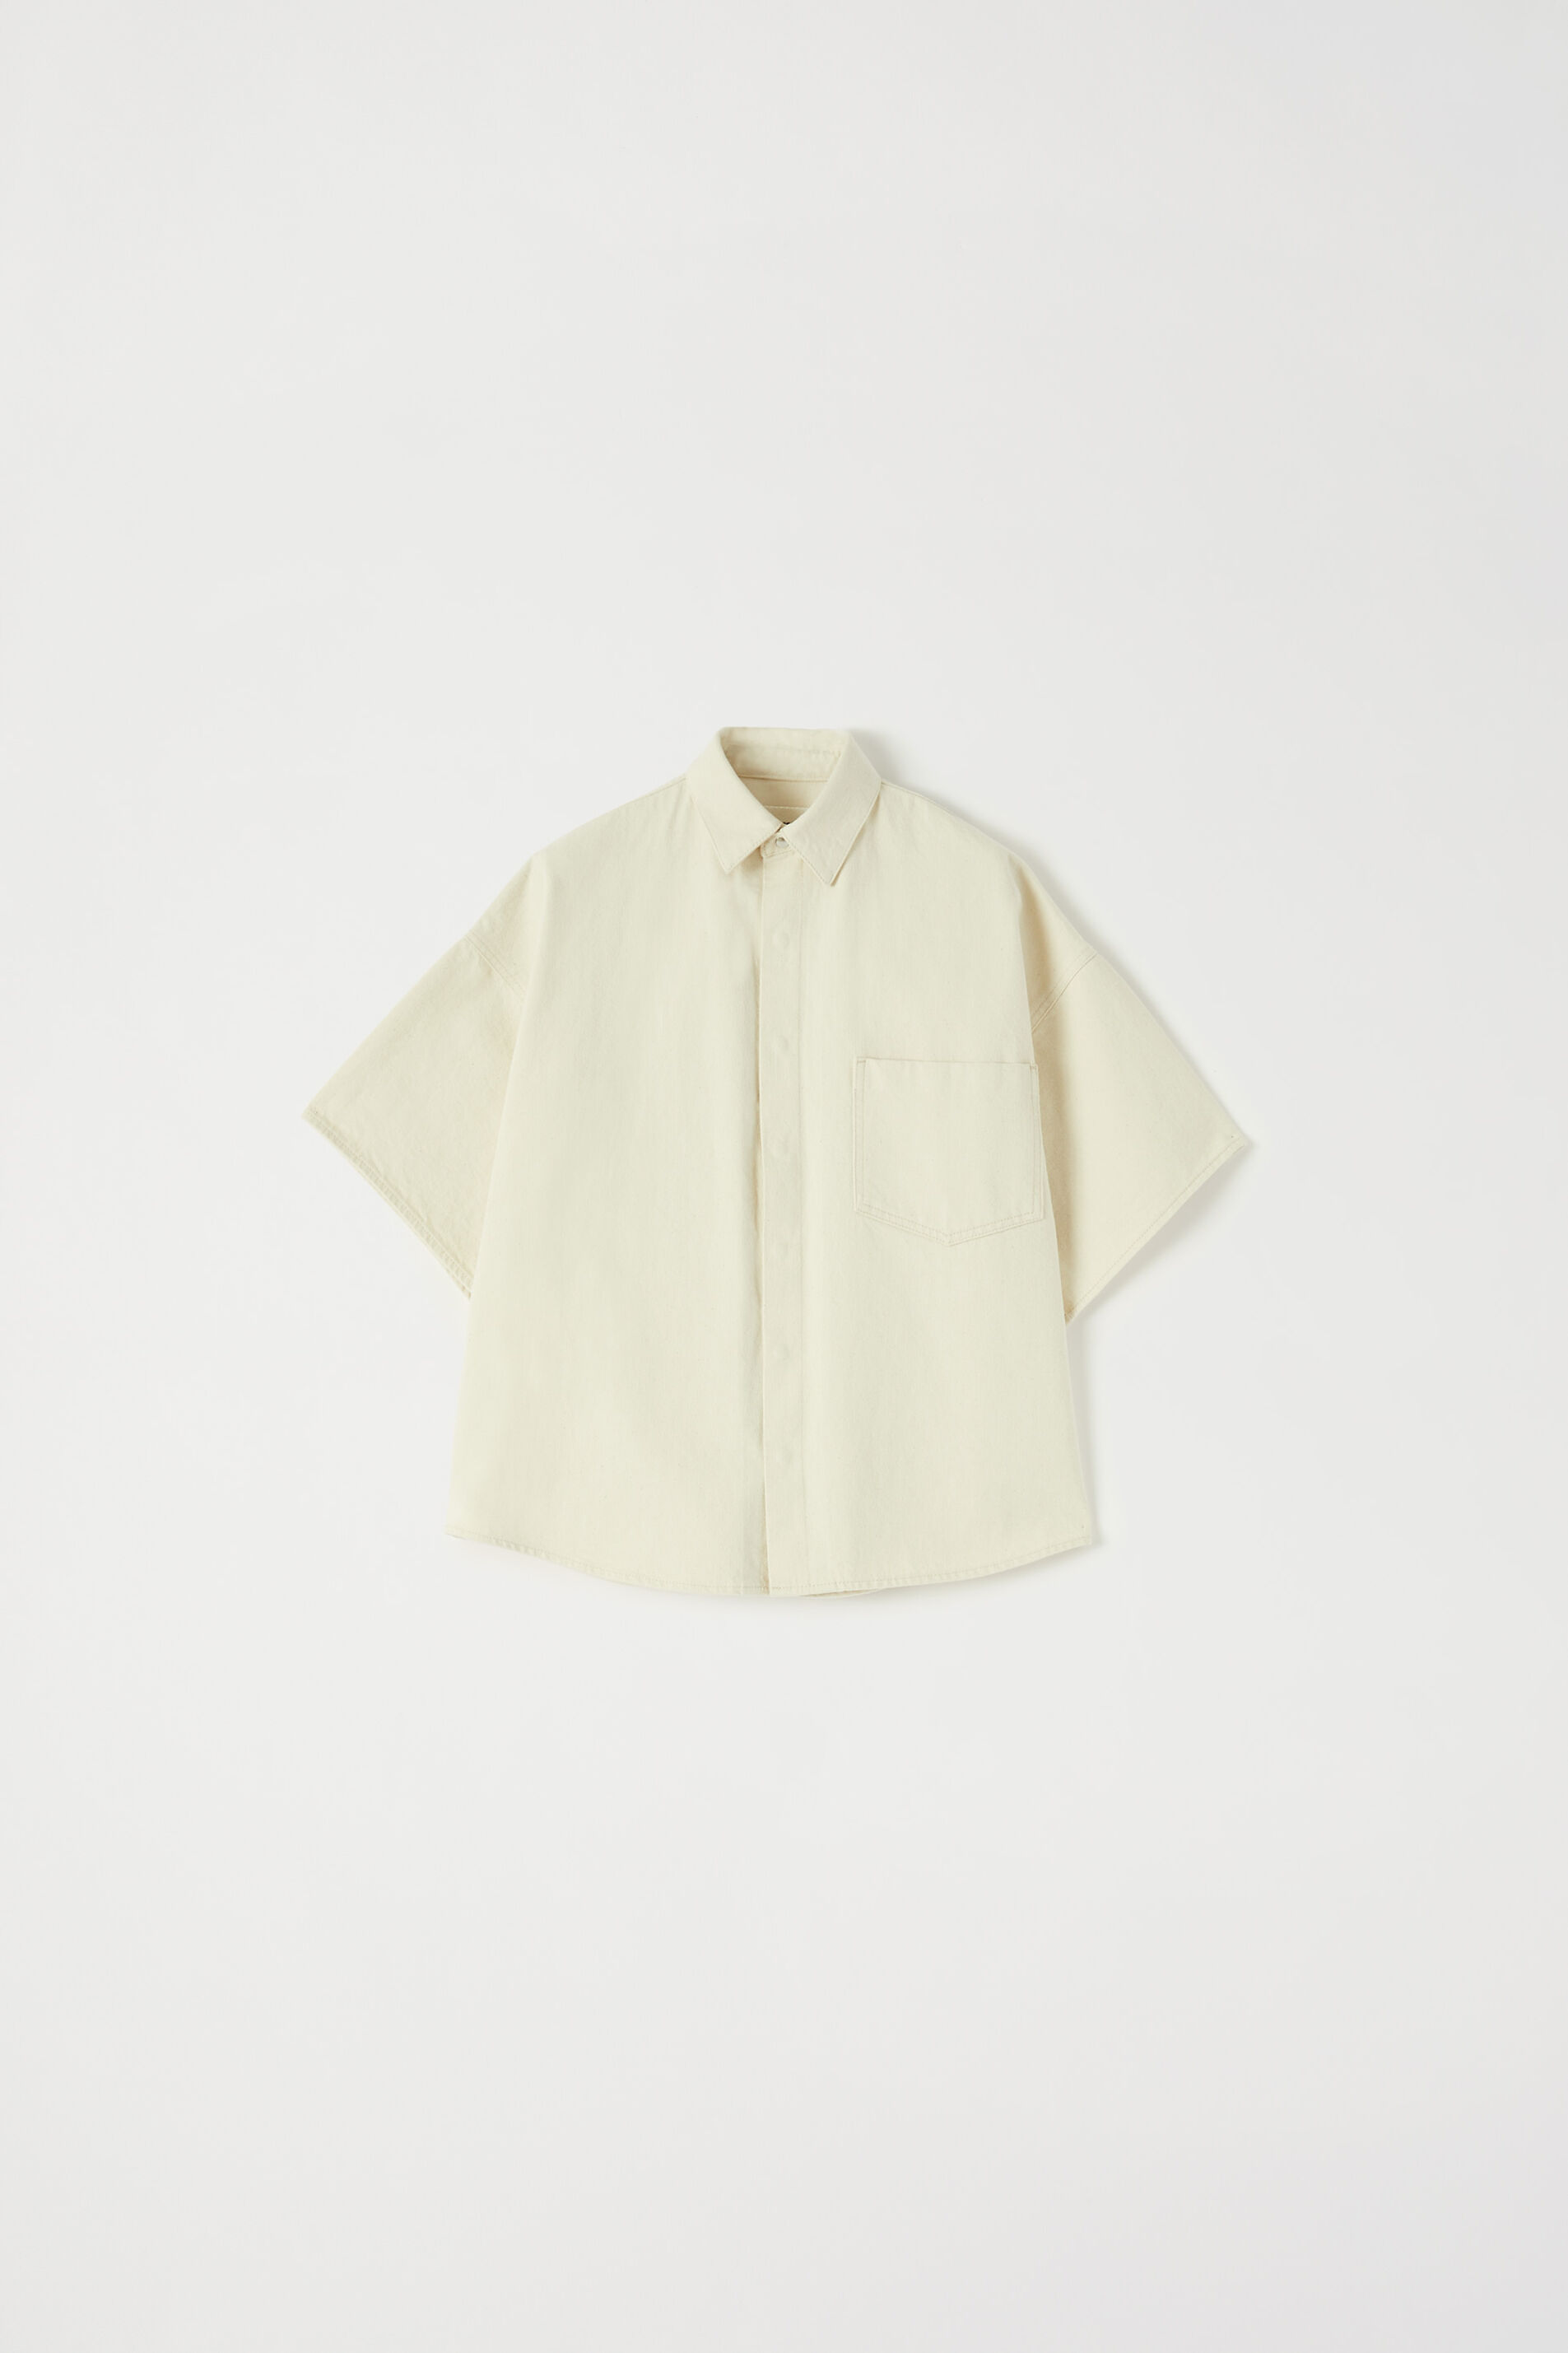 Shirt, beige, large